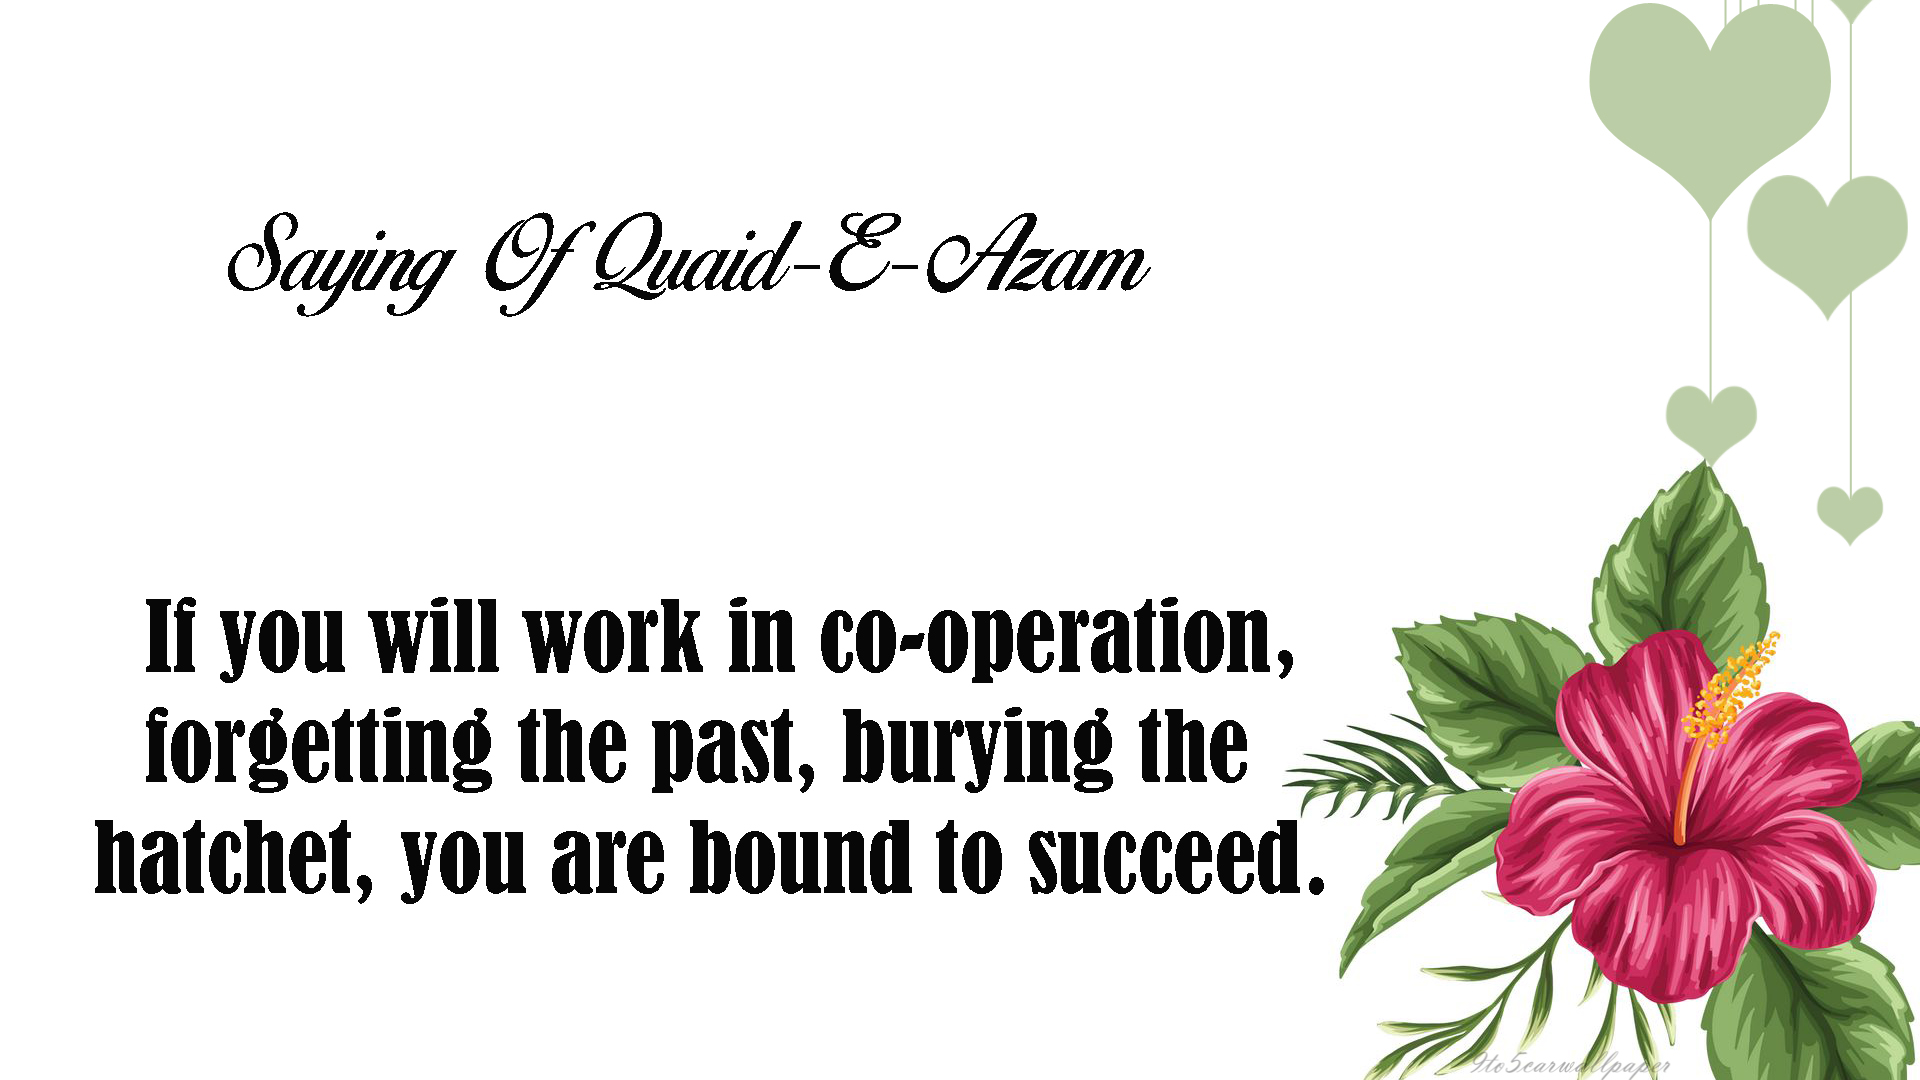 sayings-of-quaid-e-azam-quotes-posters-cards-images